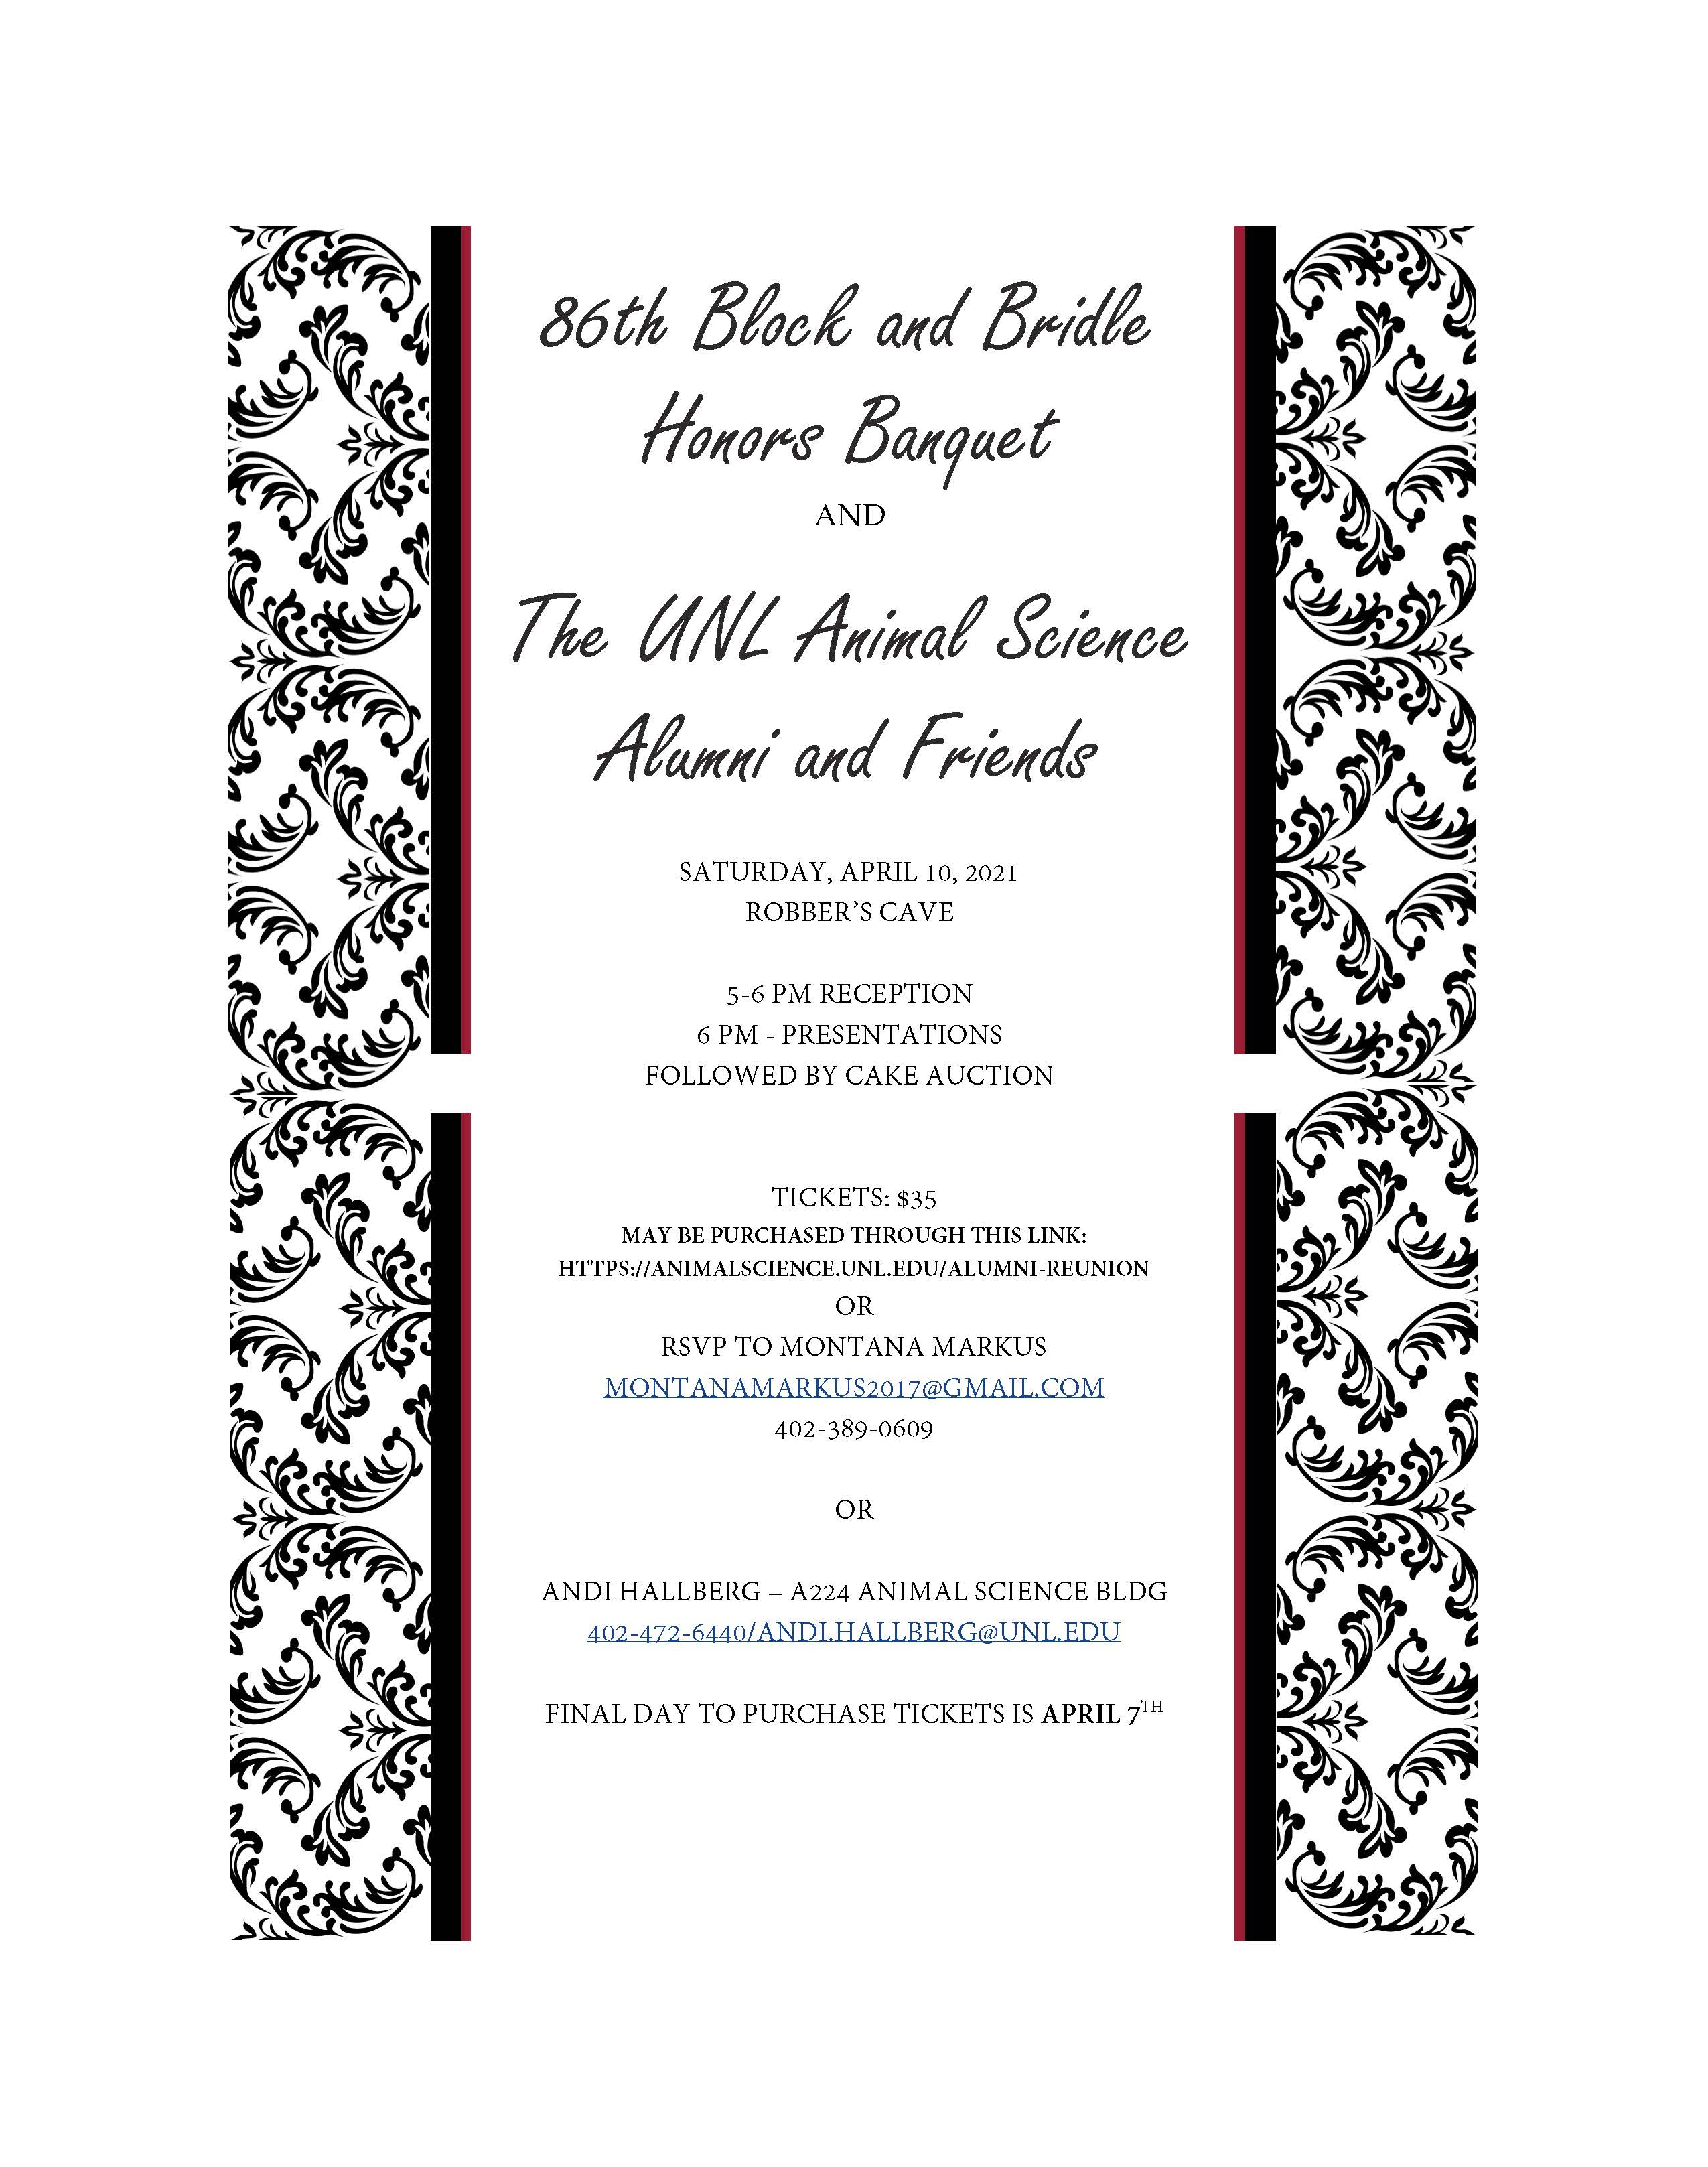 Block and Bridle newsletter invite